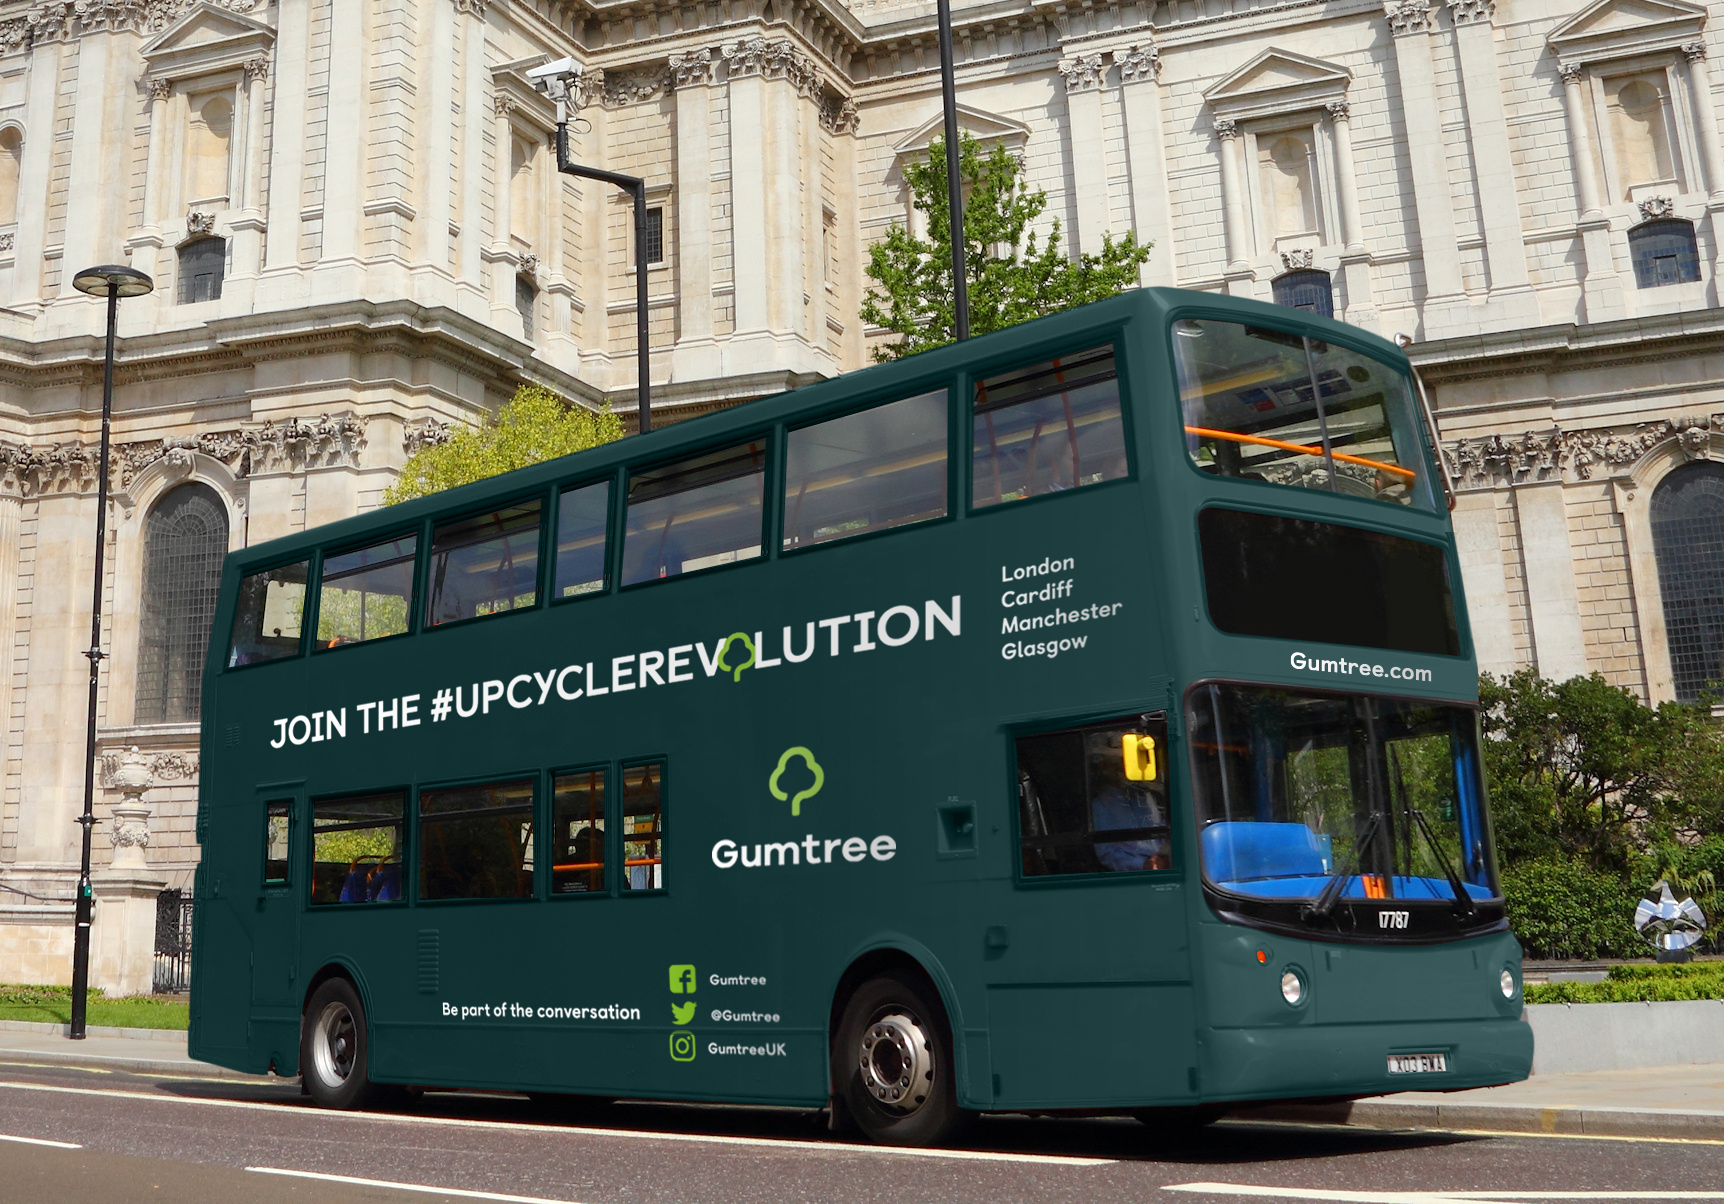 Gumtree Upcycling Revolution Bus